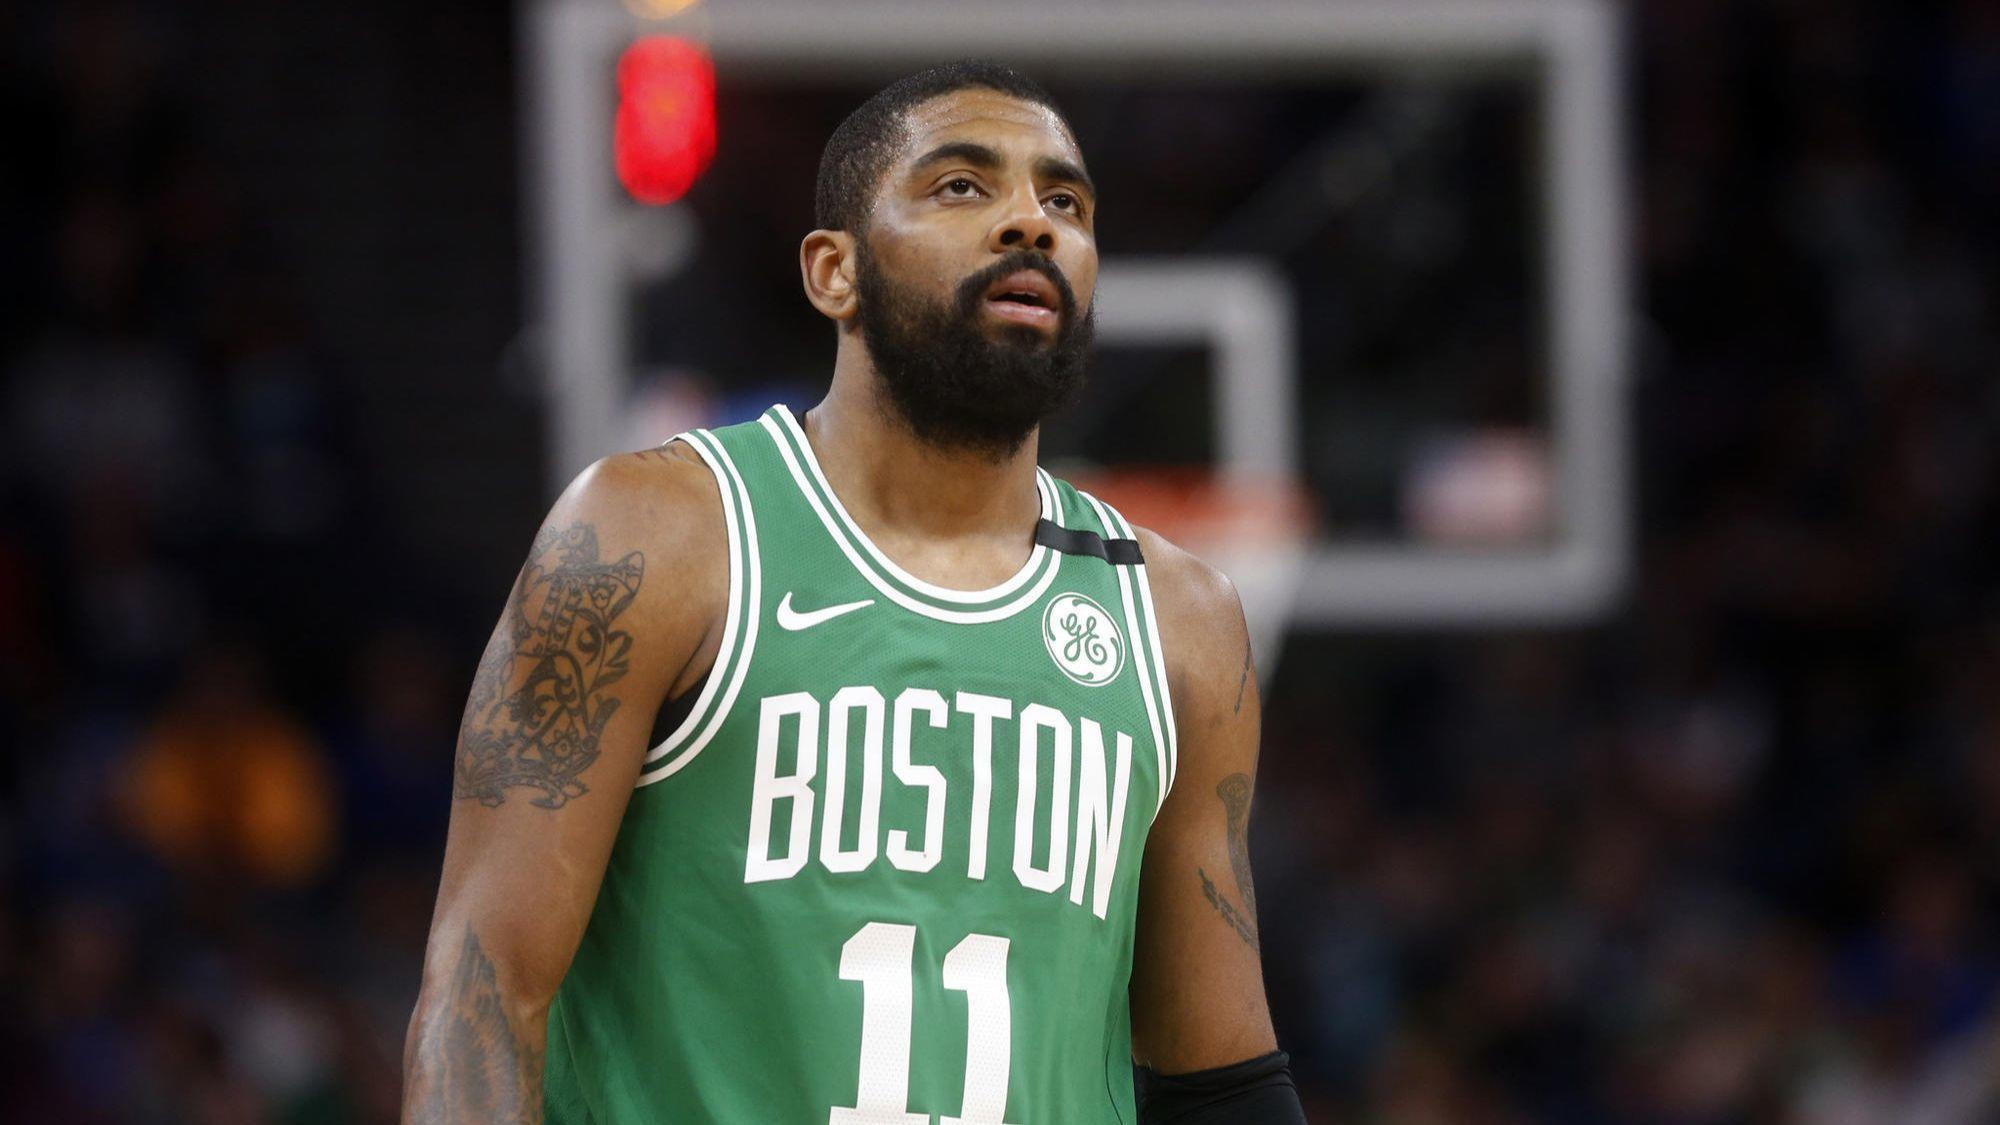 Celtics' Kyrie Irving will miss the playoffs following knee surgery - Chicago Tribune